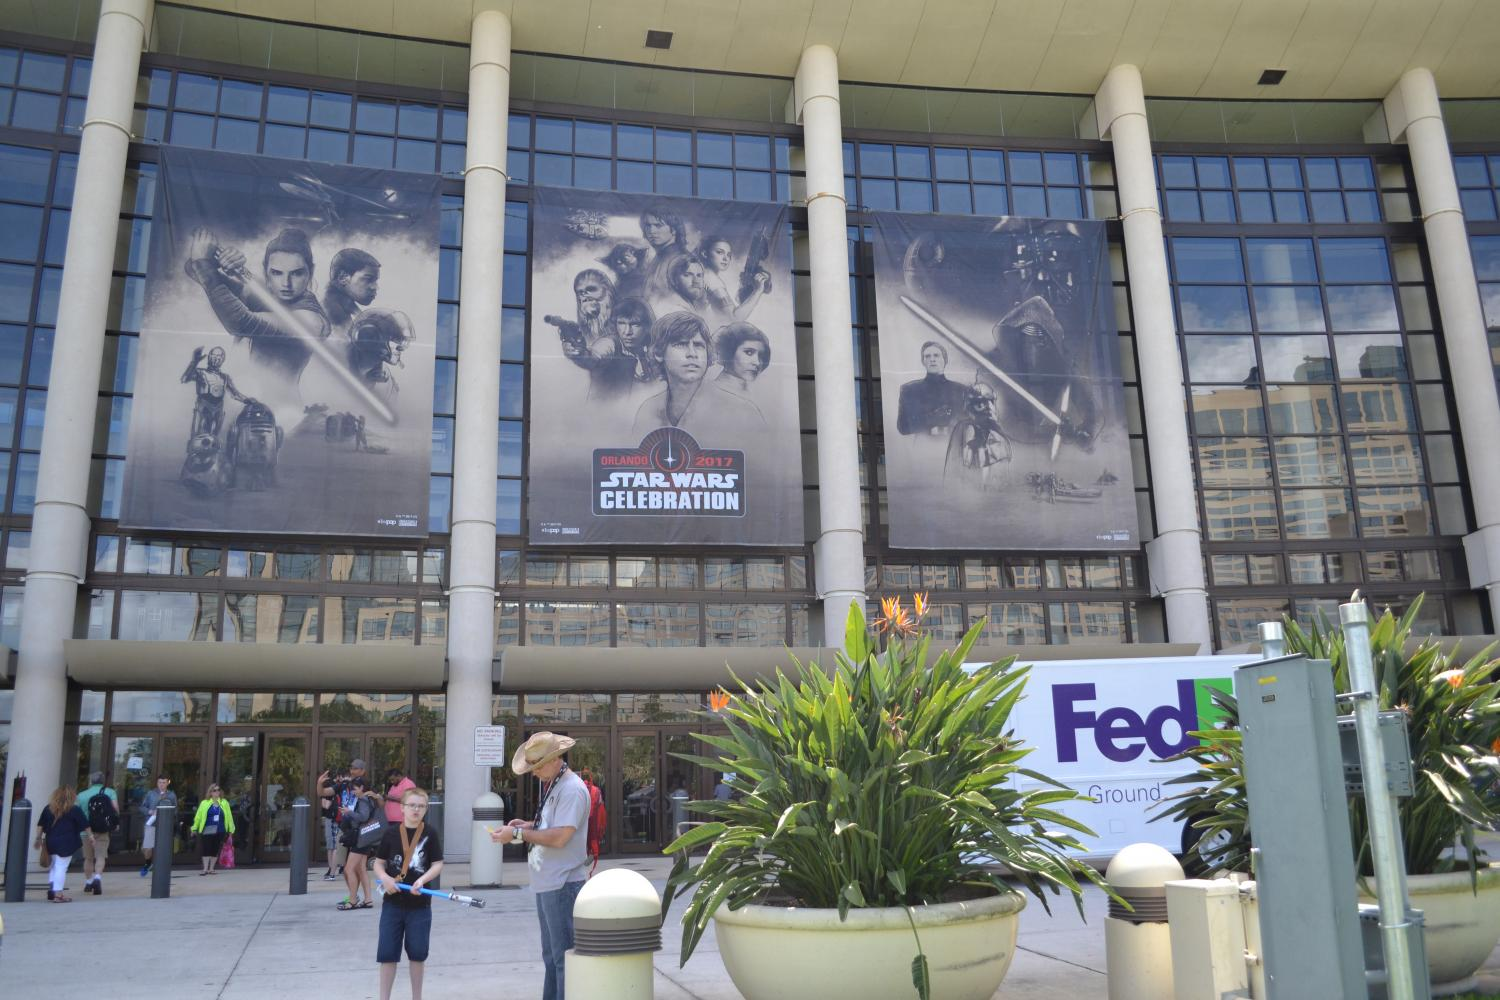 Banners+hung+outside+the+West+Concourse+of+the+Orange+County+Convention+Center+for+Star+Wars+Celebration.+